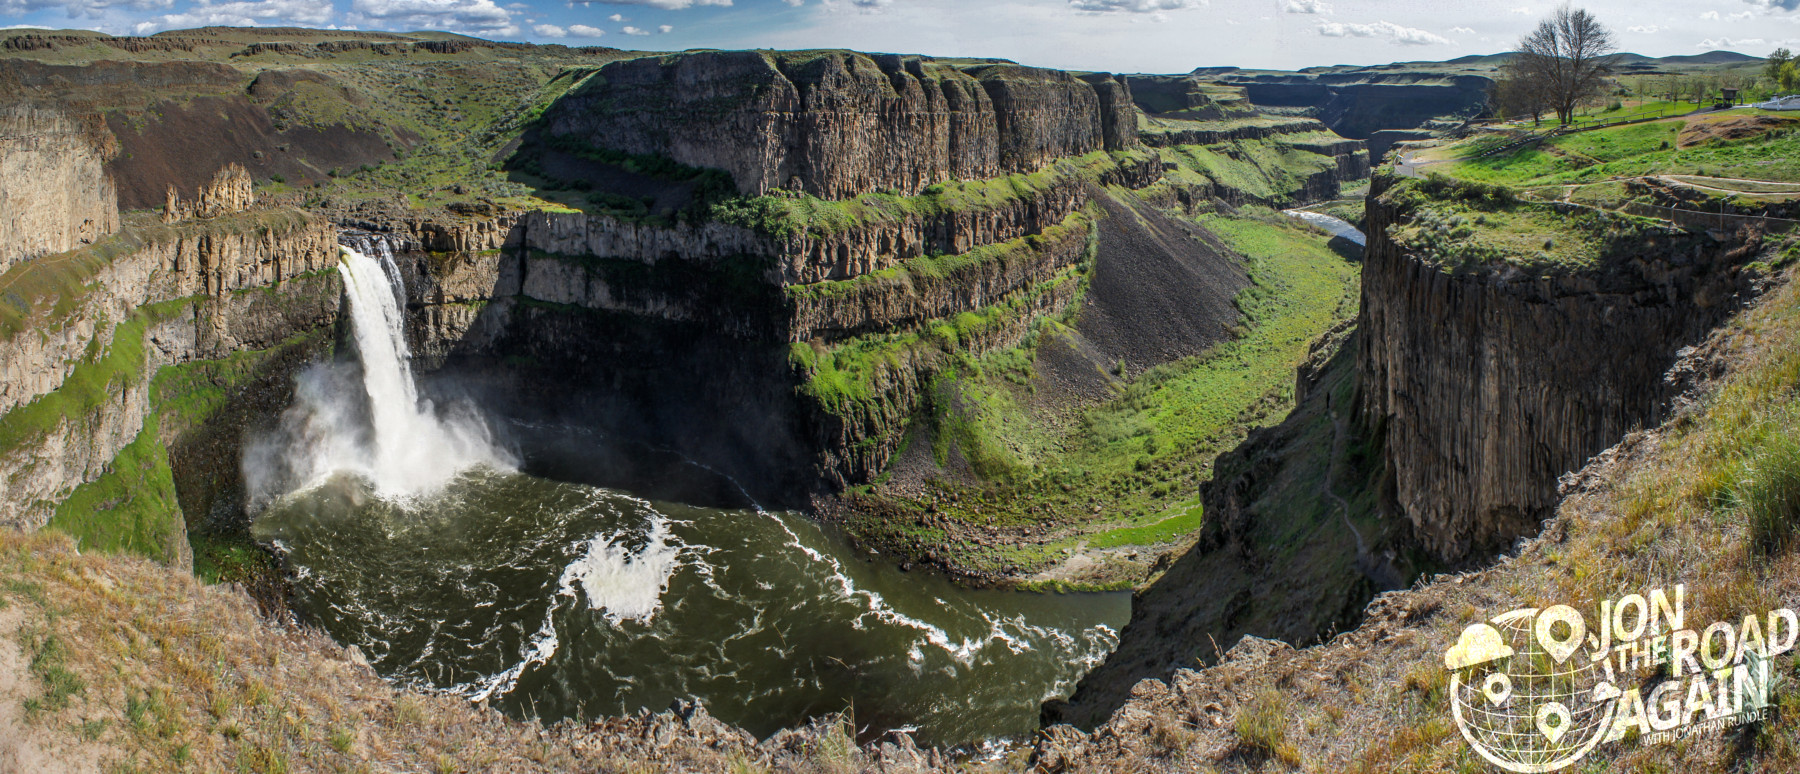 Palouse Falls With My Pals Jon The Road Again Travel